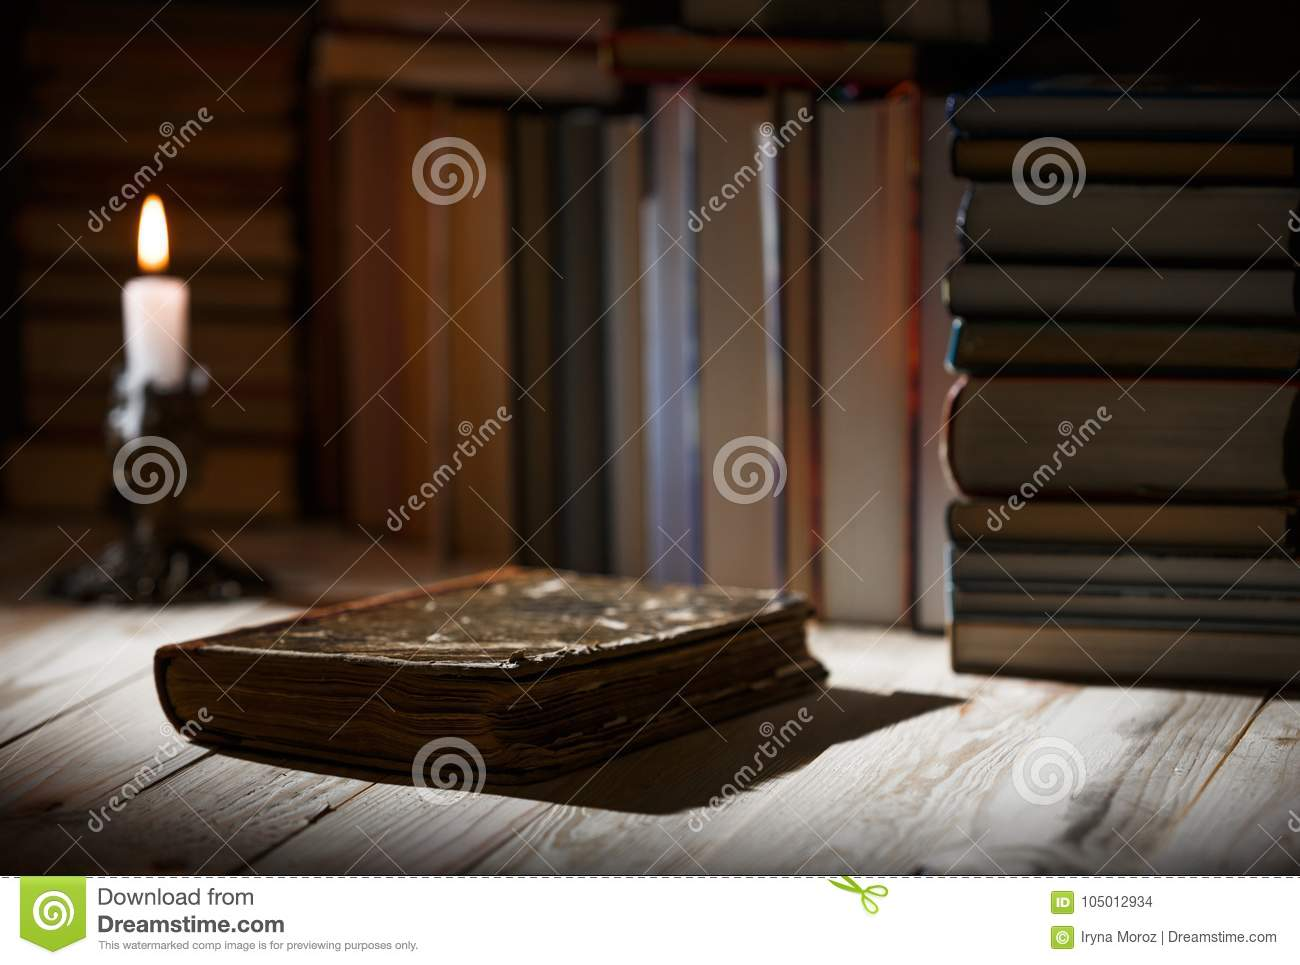 Textbooks And Books On A Wooden Table Stock Photo Image